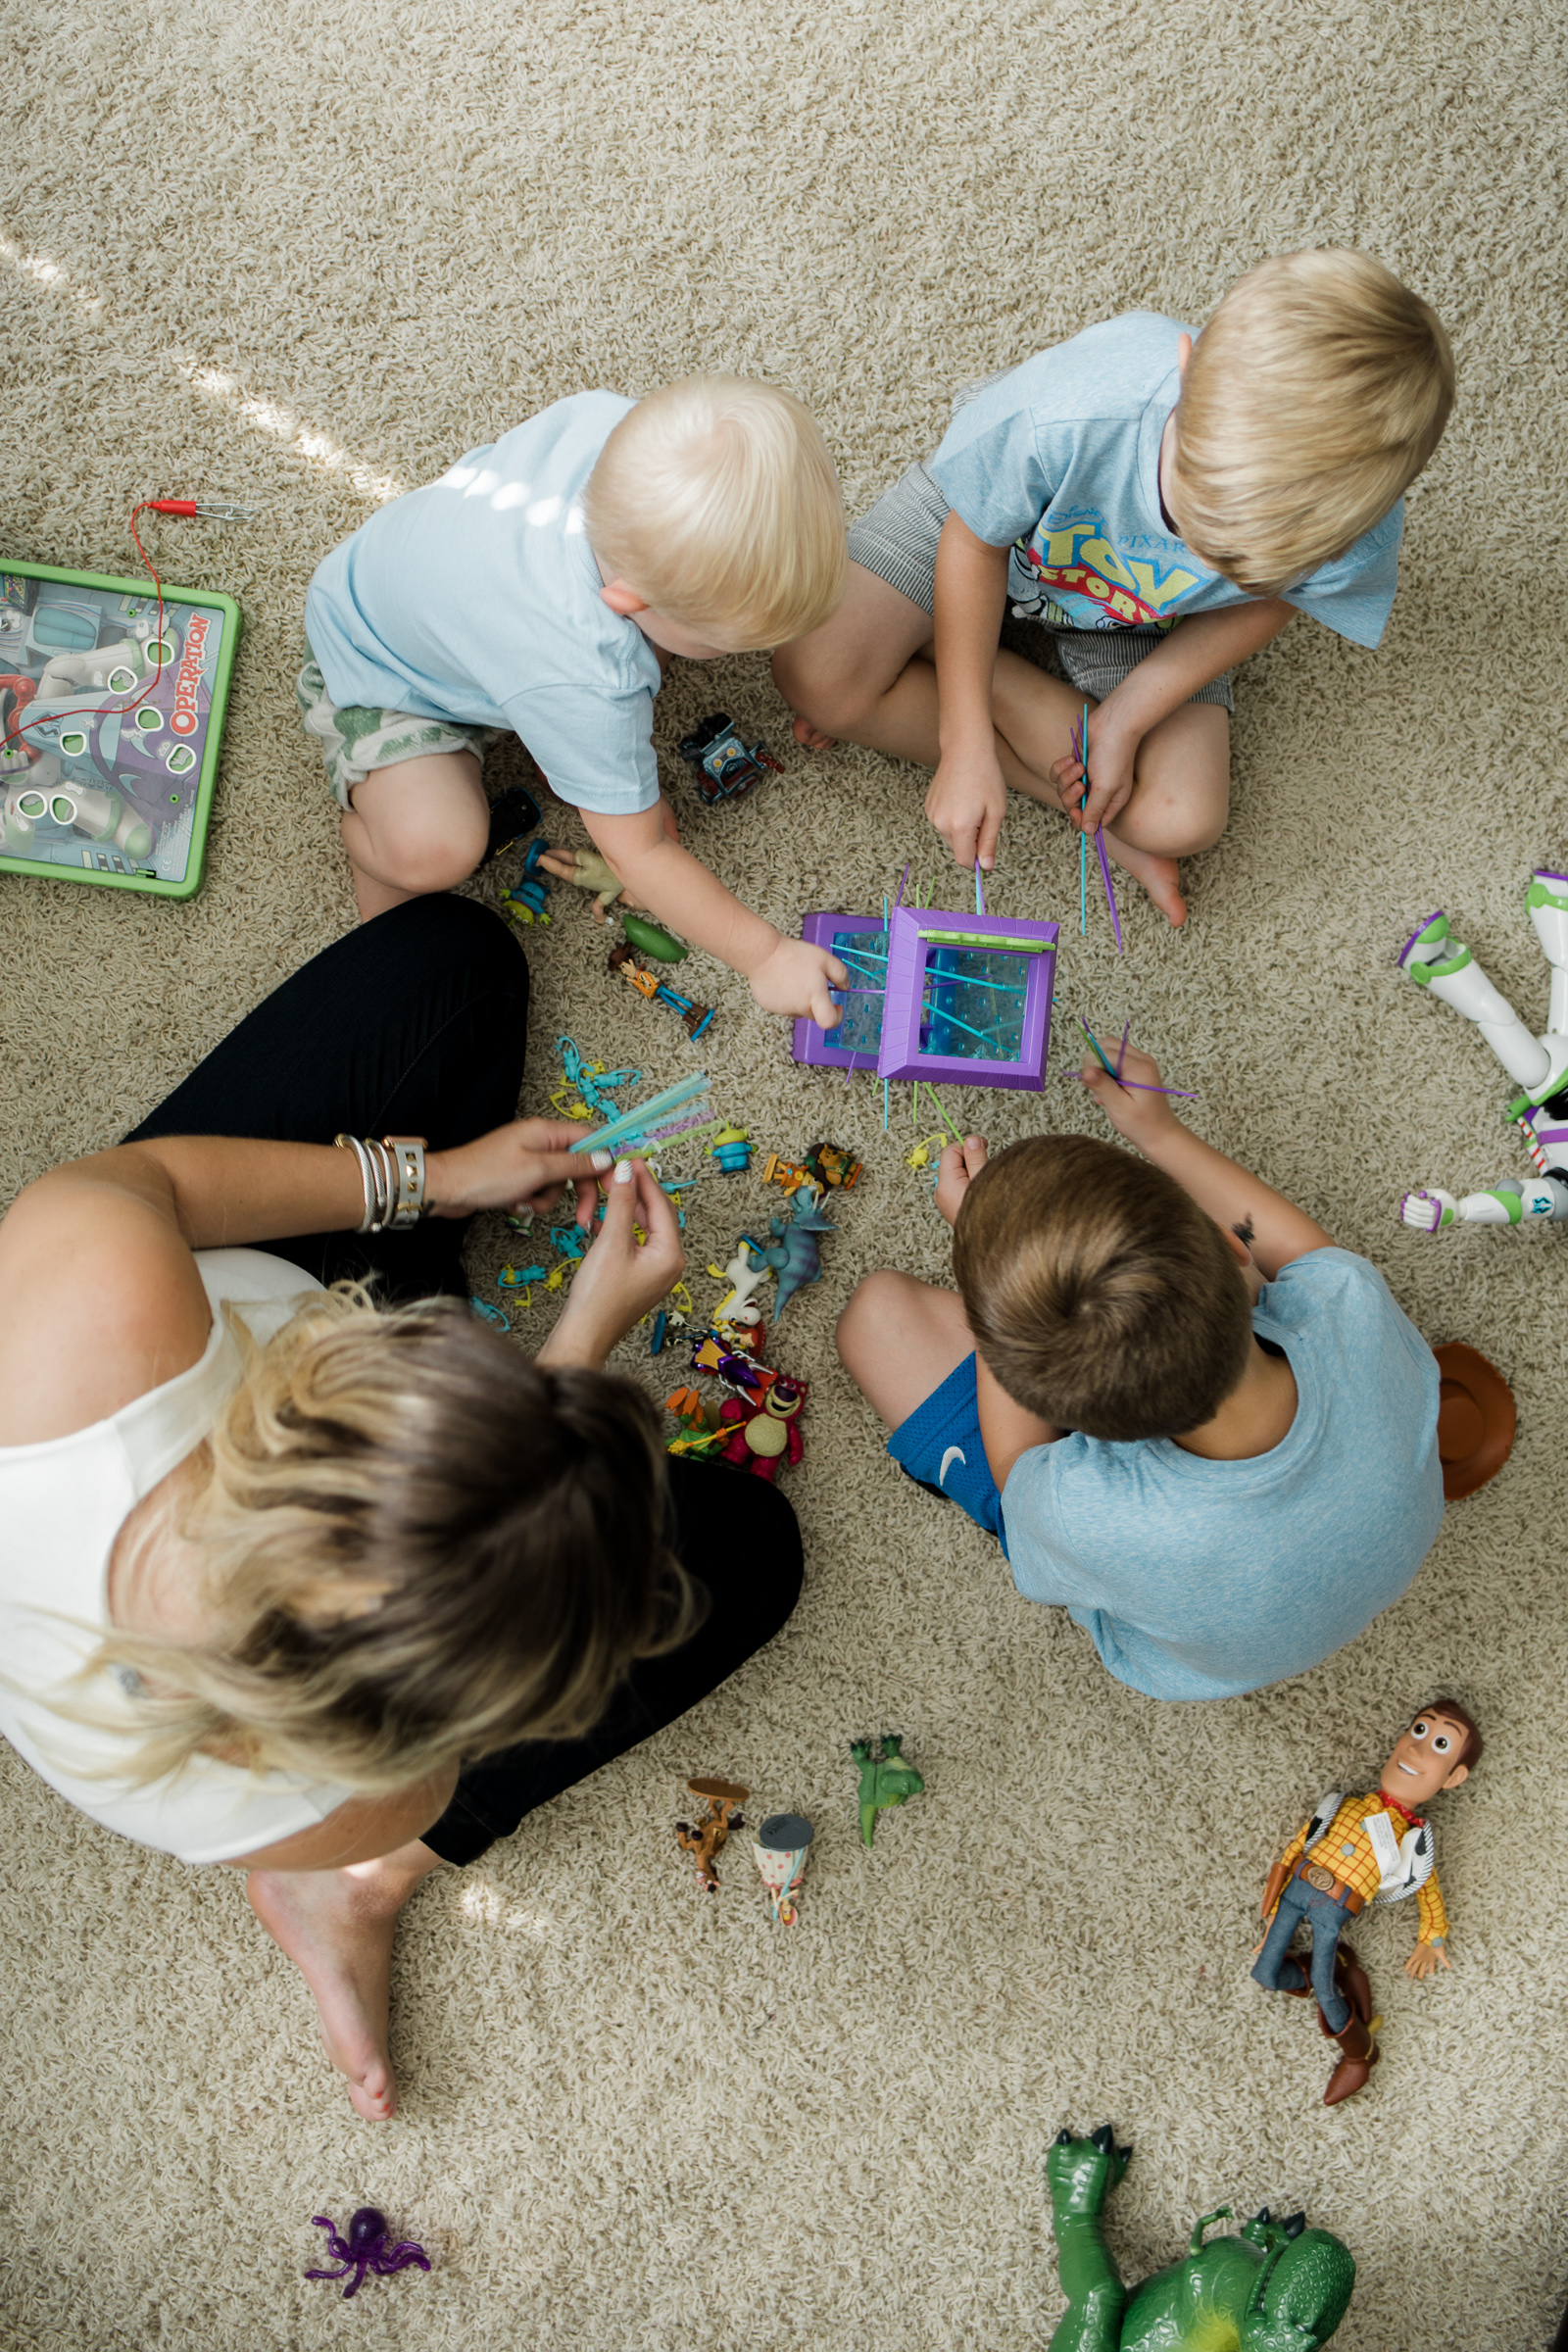 Blogger Uptown with Elly Brown plays on the floor with kids and the Toy Story 4 toys and games!